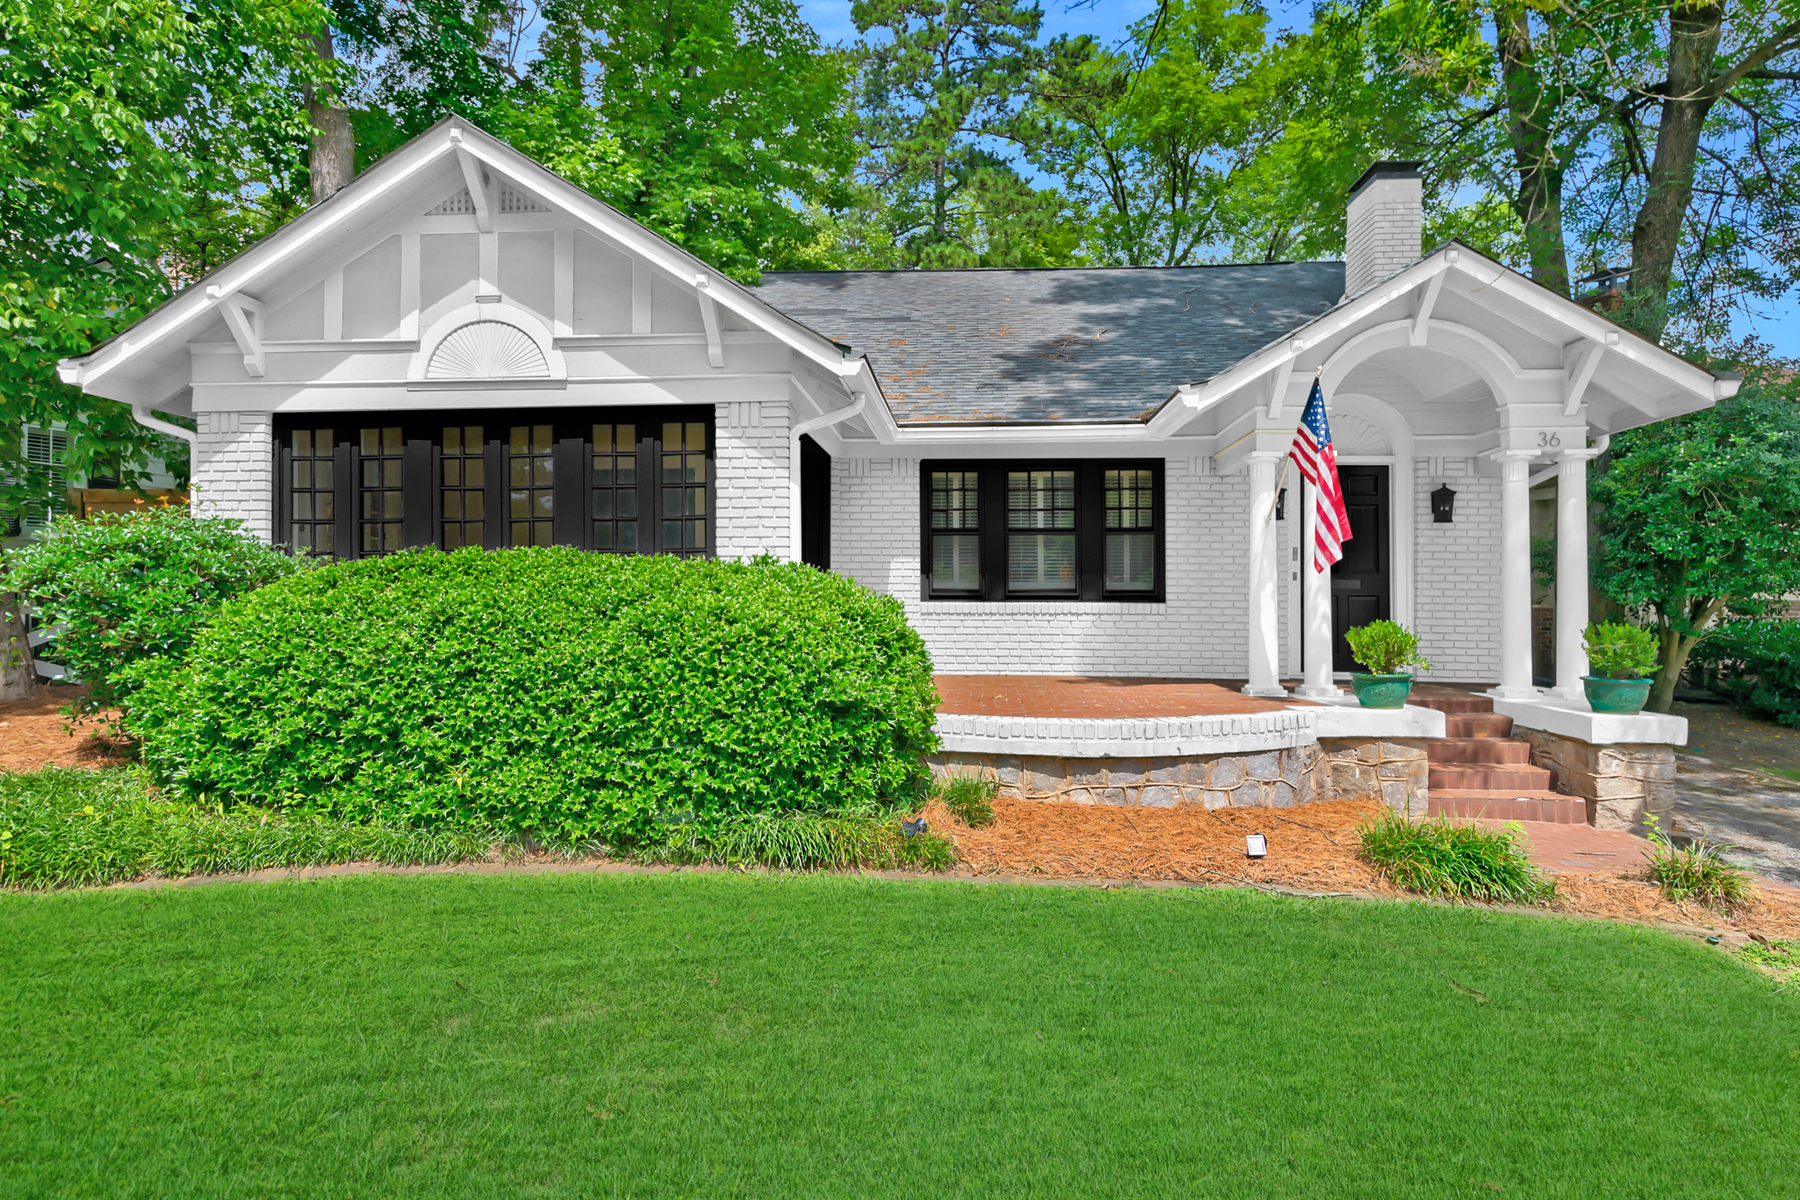 Single Family Homes for Sale at Located Directly Across The Street From Ansley Golf Course 36 Polo Drive NE Atlanta, Georgia 30309 United States